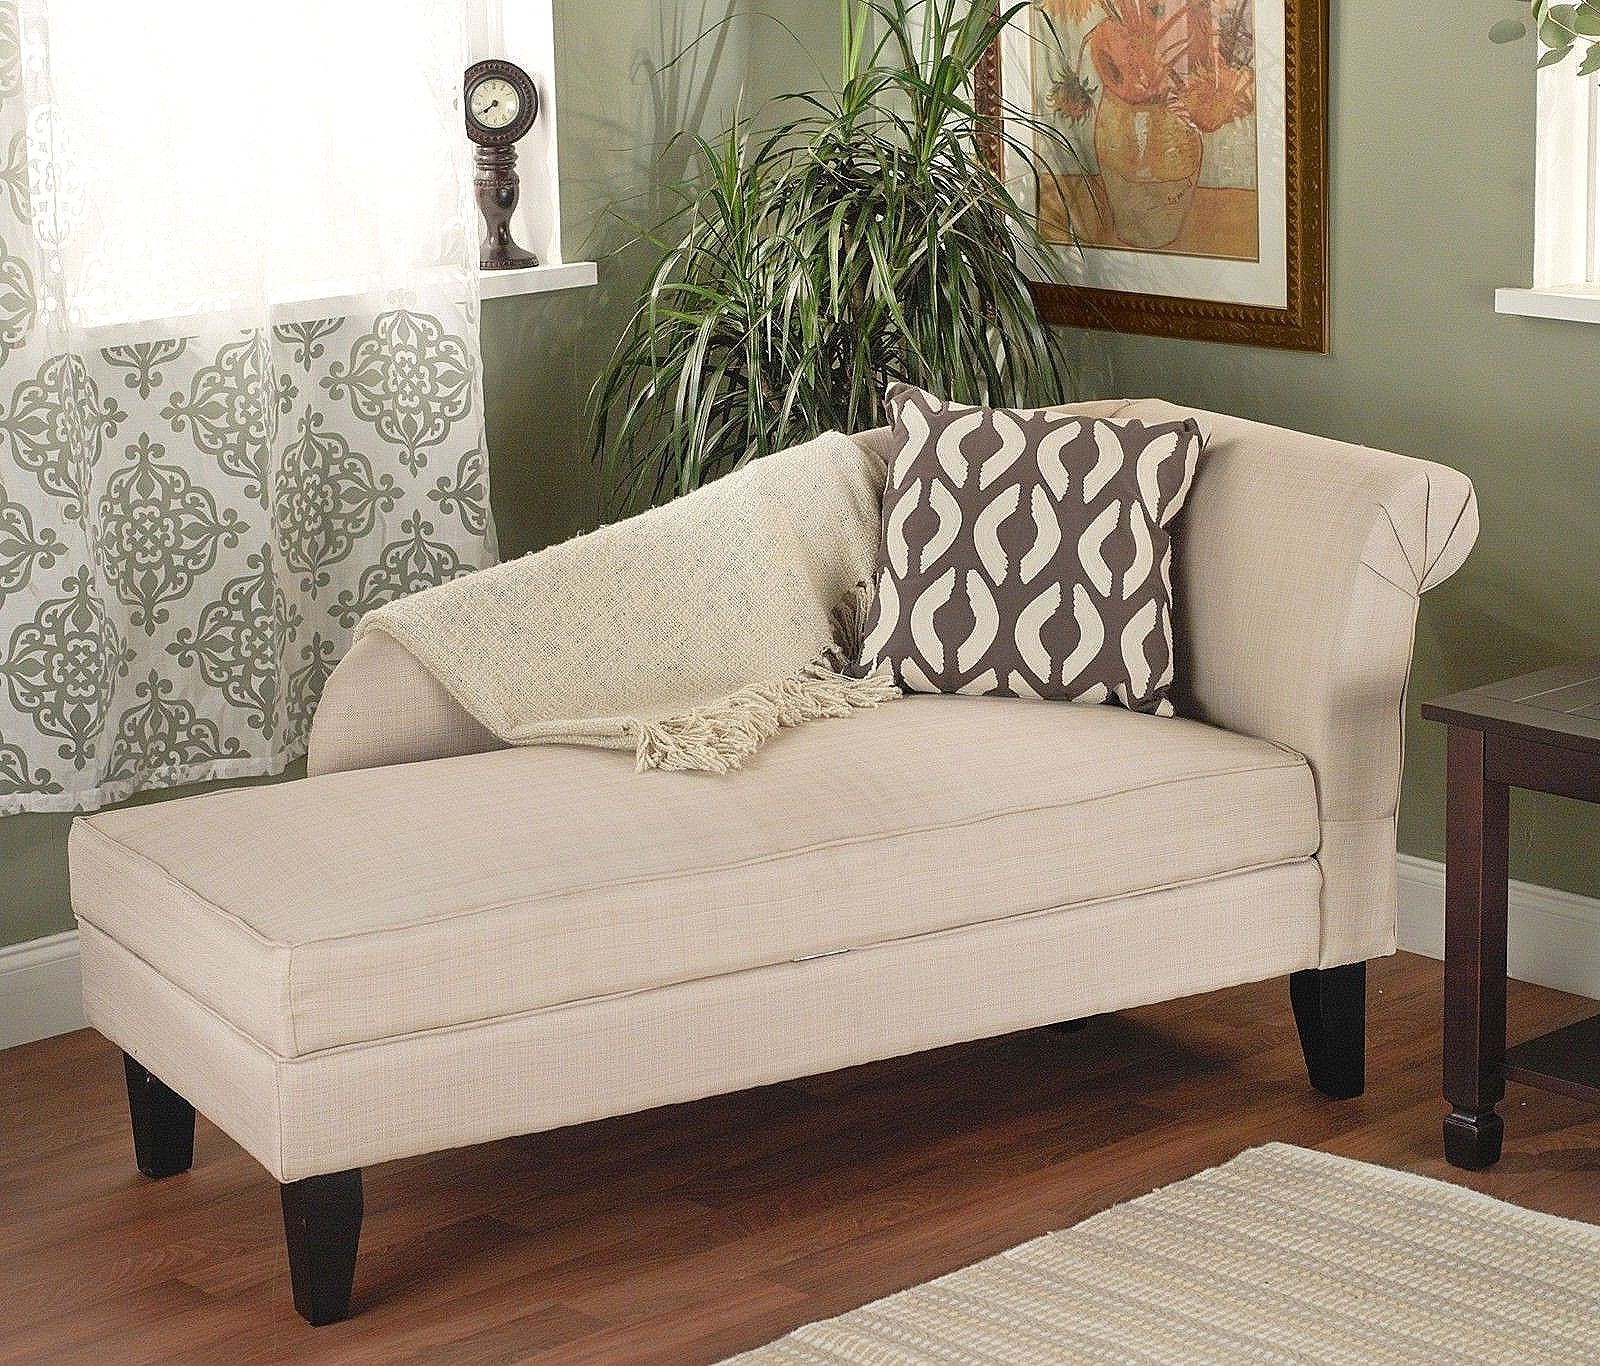 2018 Latest Overstock Chaise Lounges